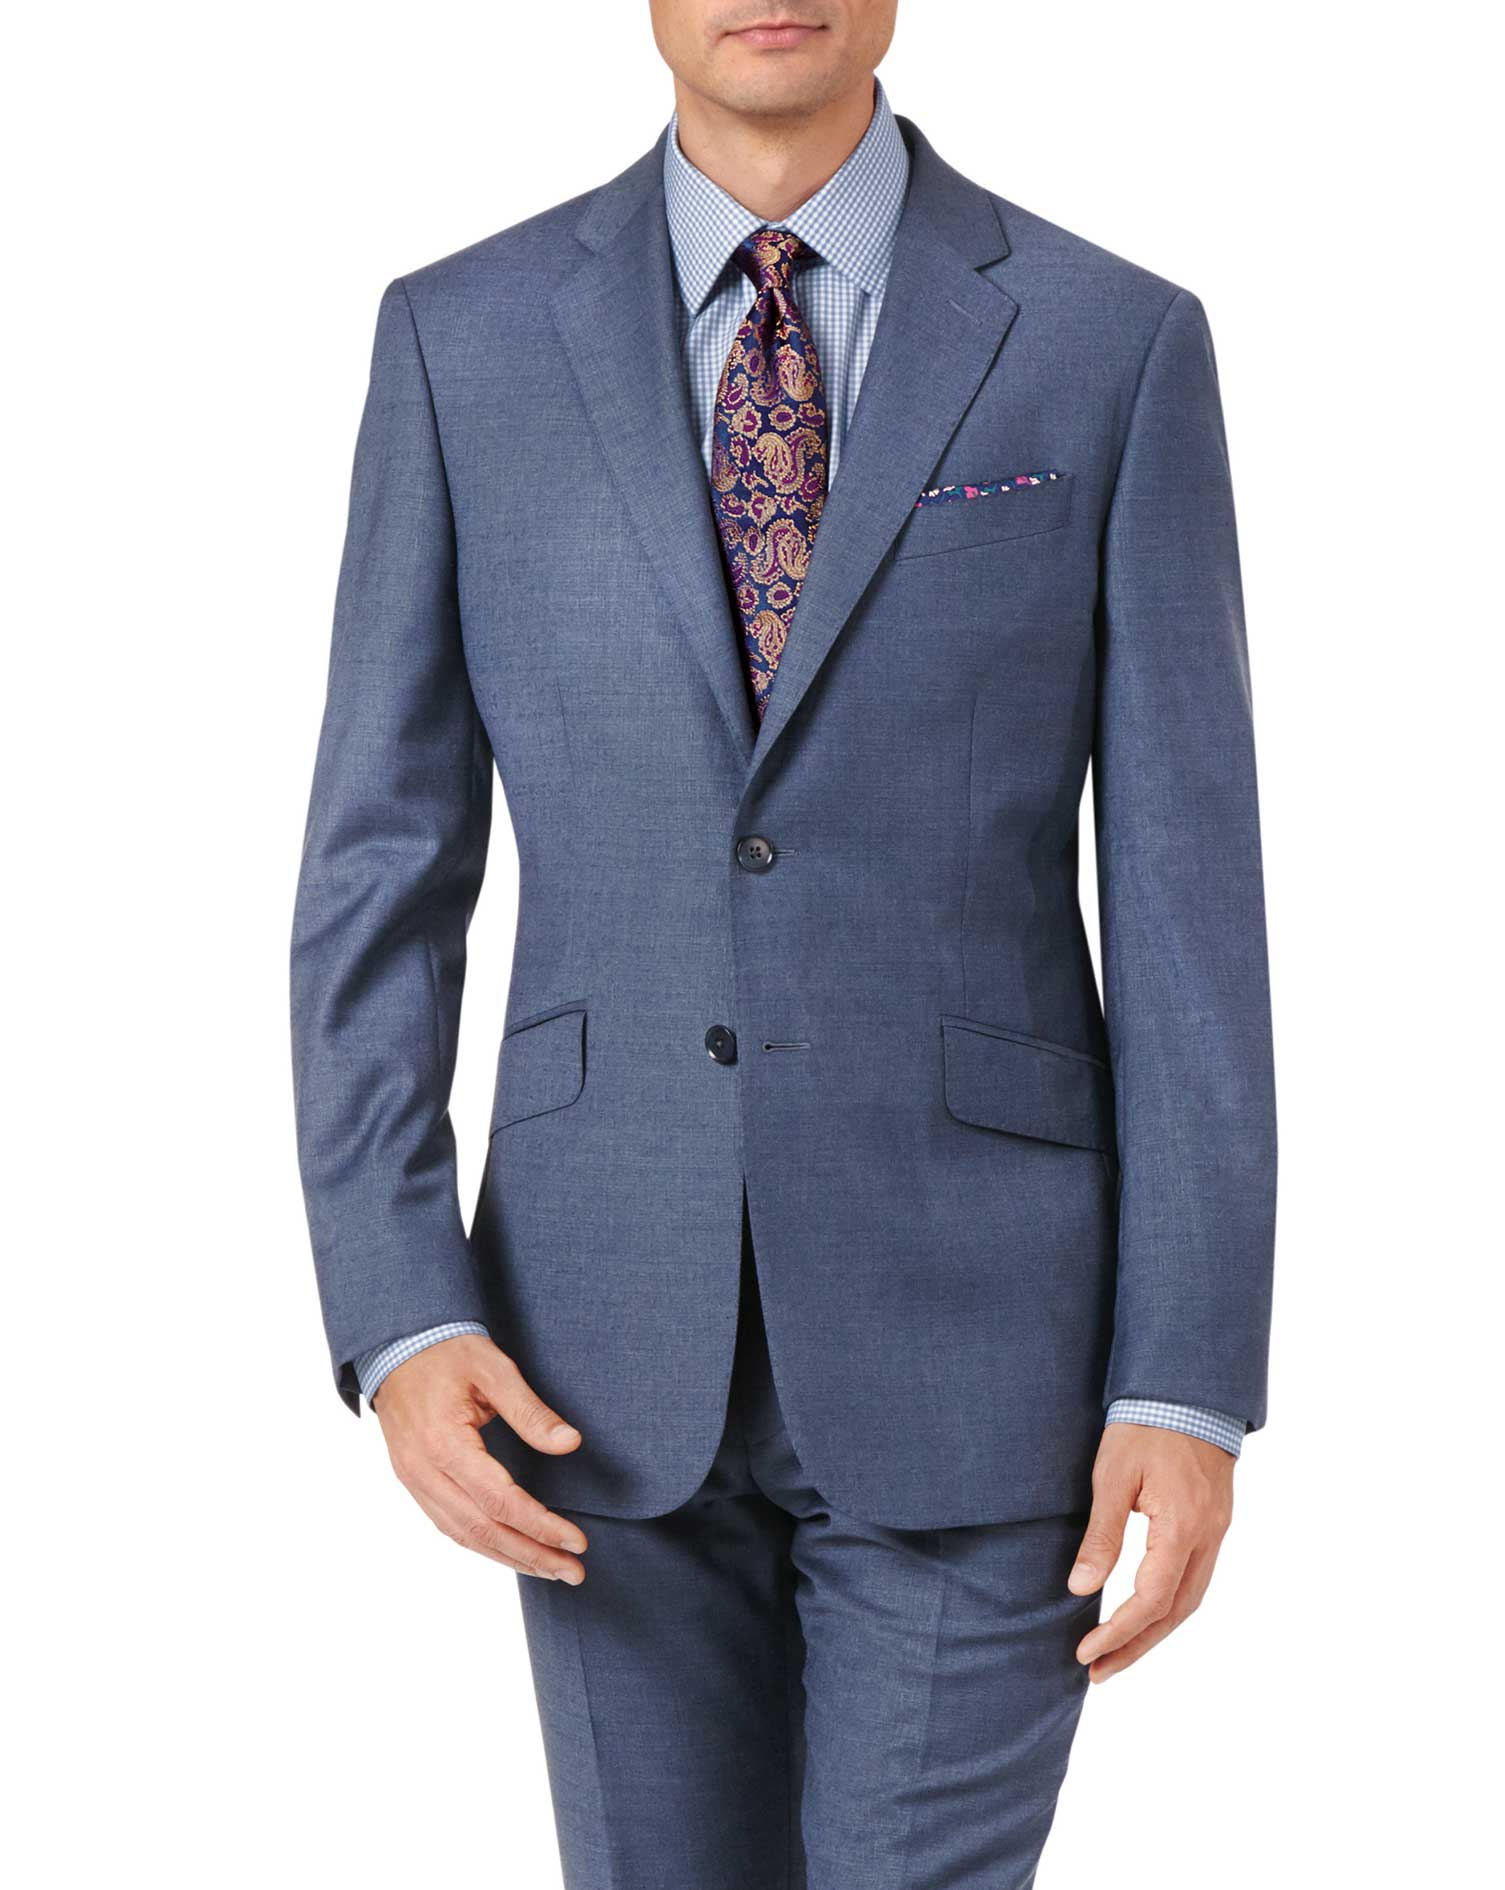 Airforce Blue Slim Fit Cross Hatch Weave Italian Suit Wool Jacket Size 38 Short by Charles Tyrwhitt